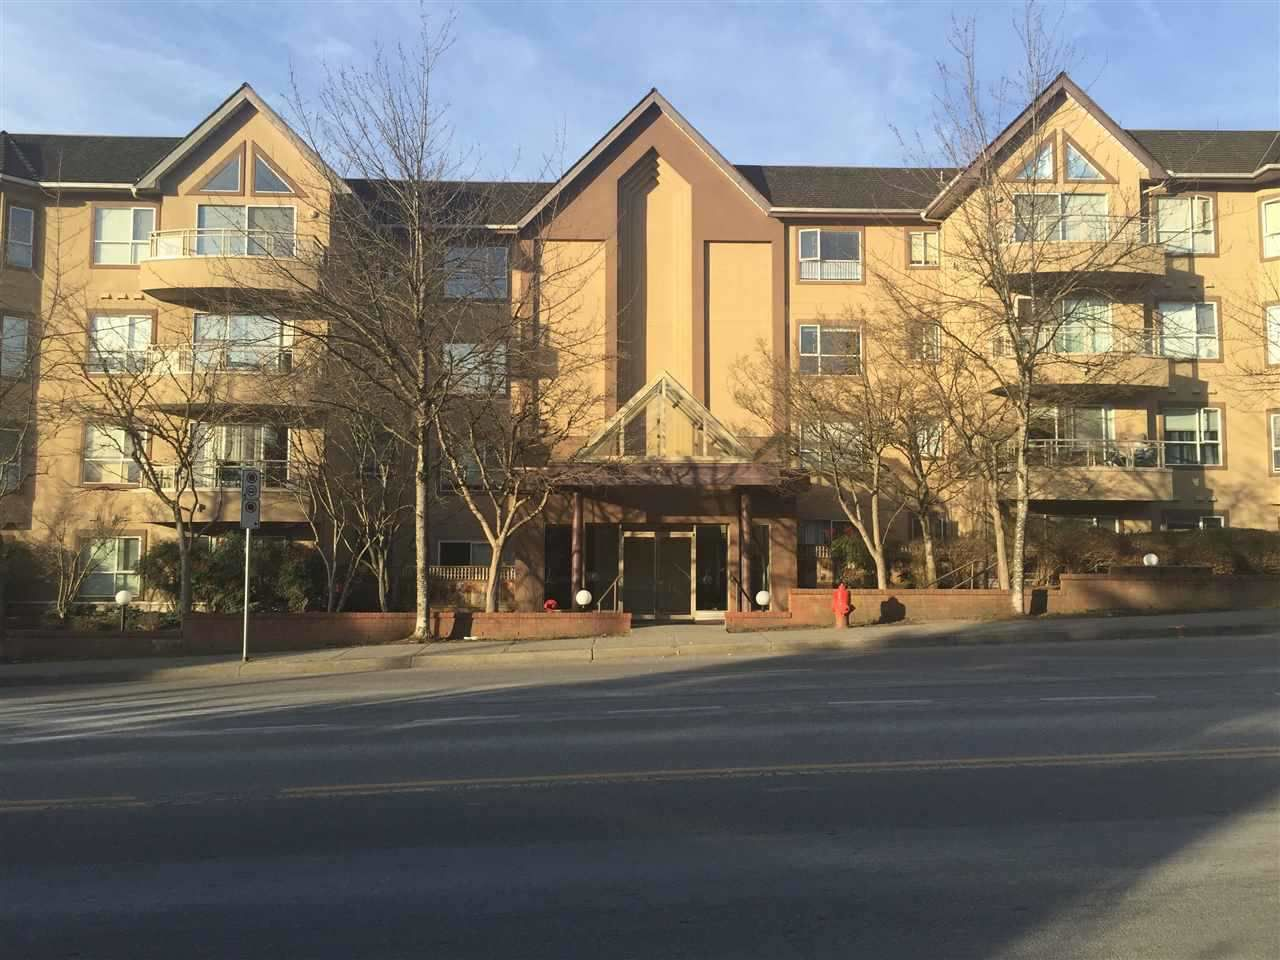 Main Photo: 107 2285 PITT RIVER Road in Port Coquitlam: Central Pt Coquitlam Condo for sale : MLS®# R2170957